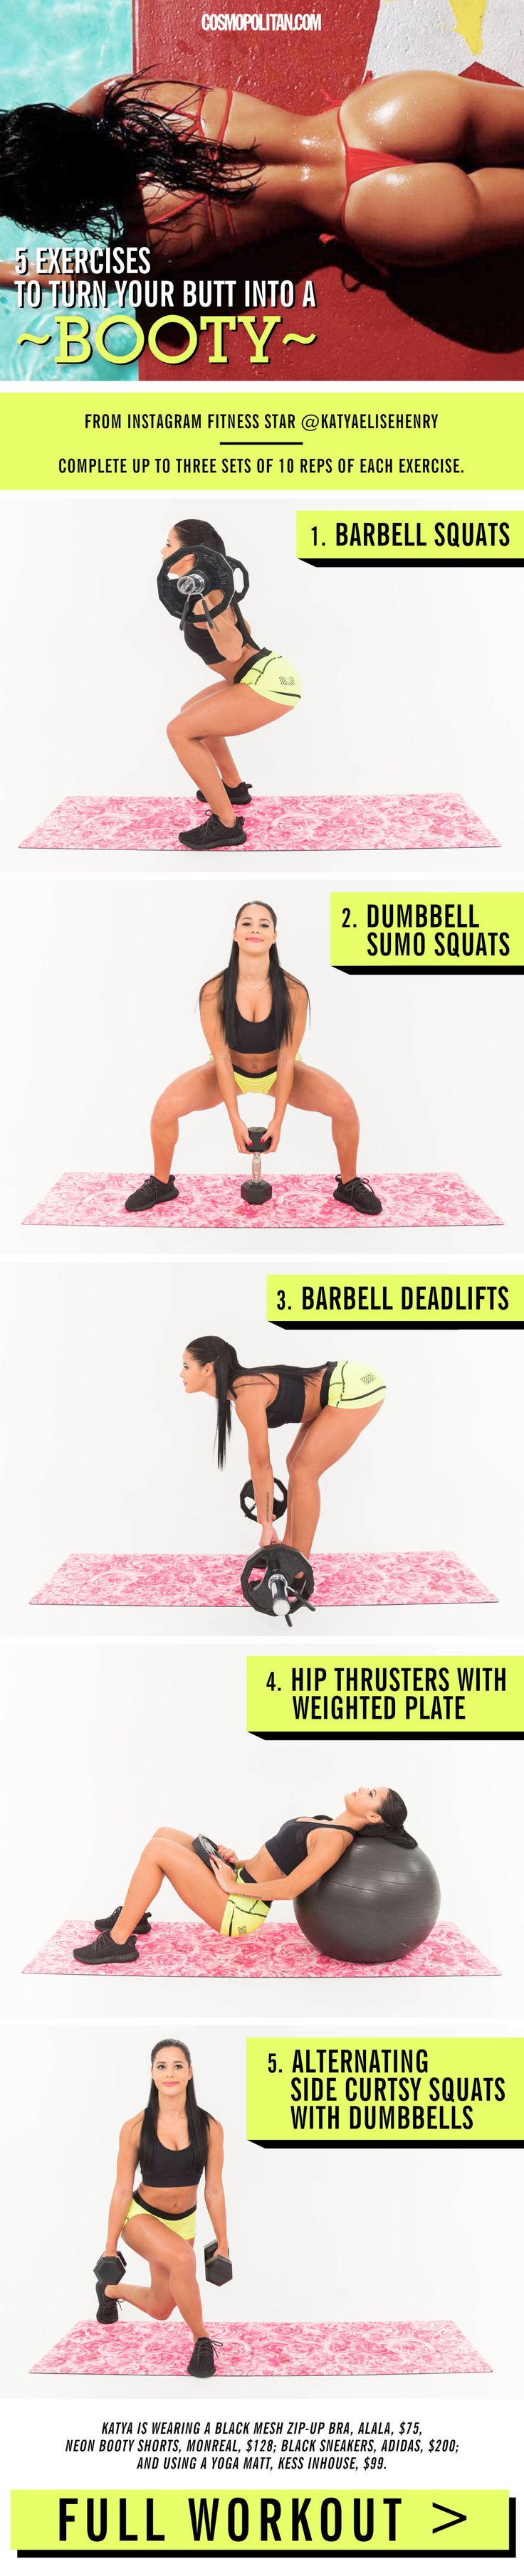 BUTT WORKOUT FROM INSTAGRAM FITNESS STAR KATYA HENRY. Here, she shares her #1 secret to building a round, tight tush, plus the best butt workout moves to make your booty Instagram-worthy asap! Complete three sets of these moves, doing 10 reps of exercise. Find the full workout and more easy butt workout tips here!